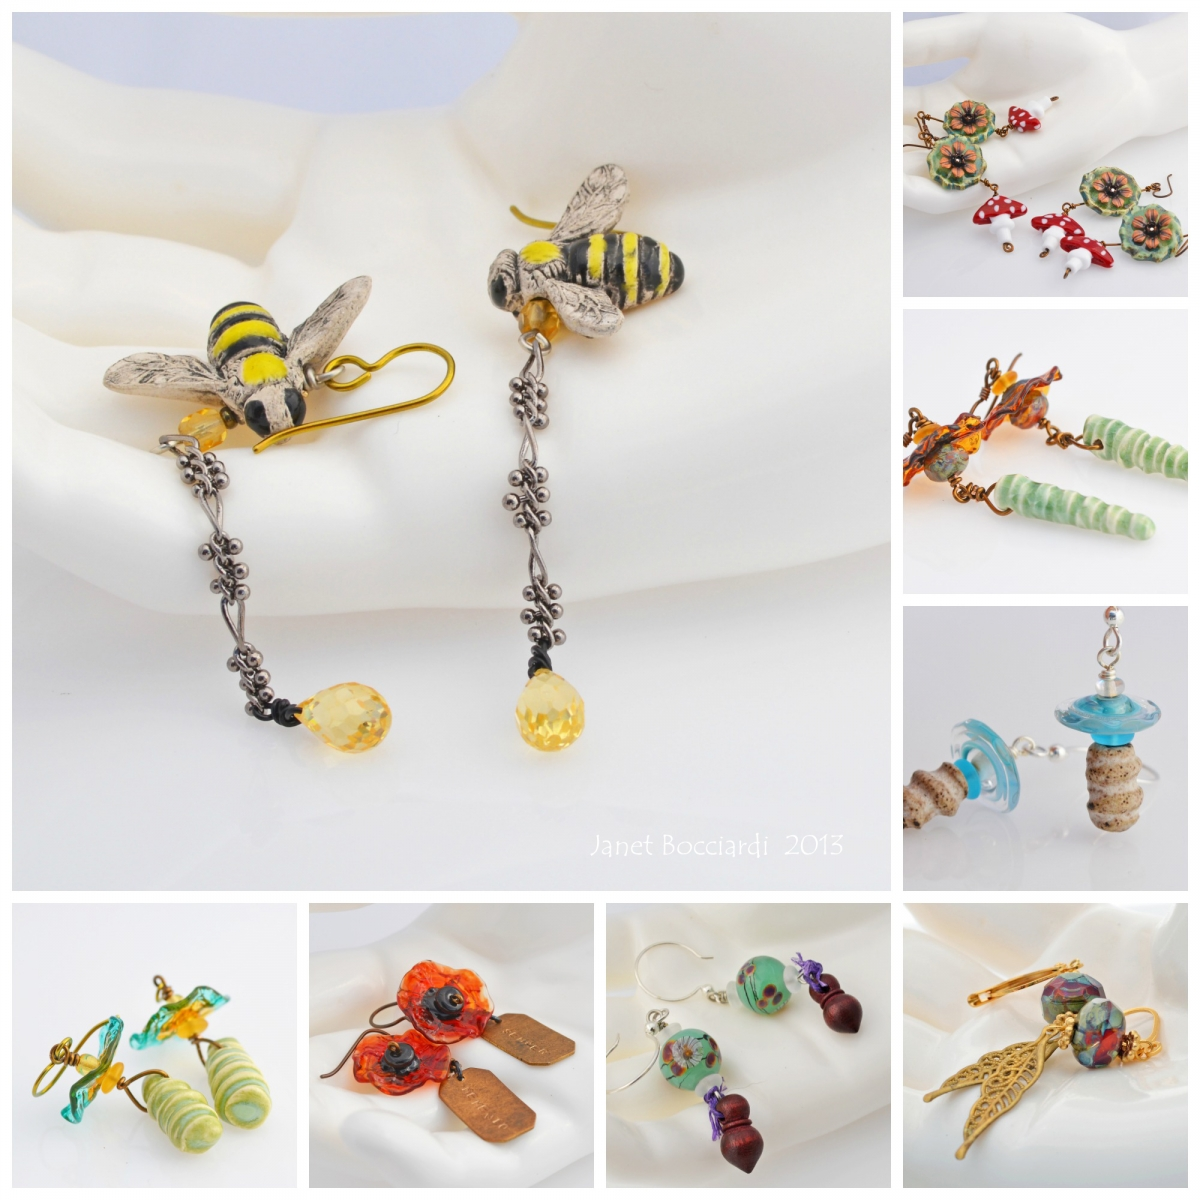 Artisan Earrings 2013 by Honey from the Bee